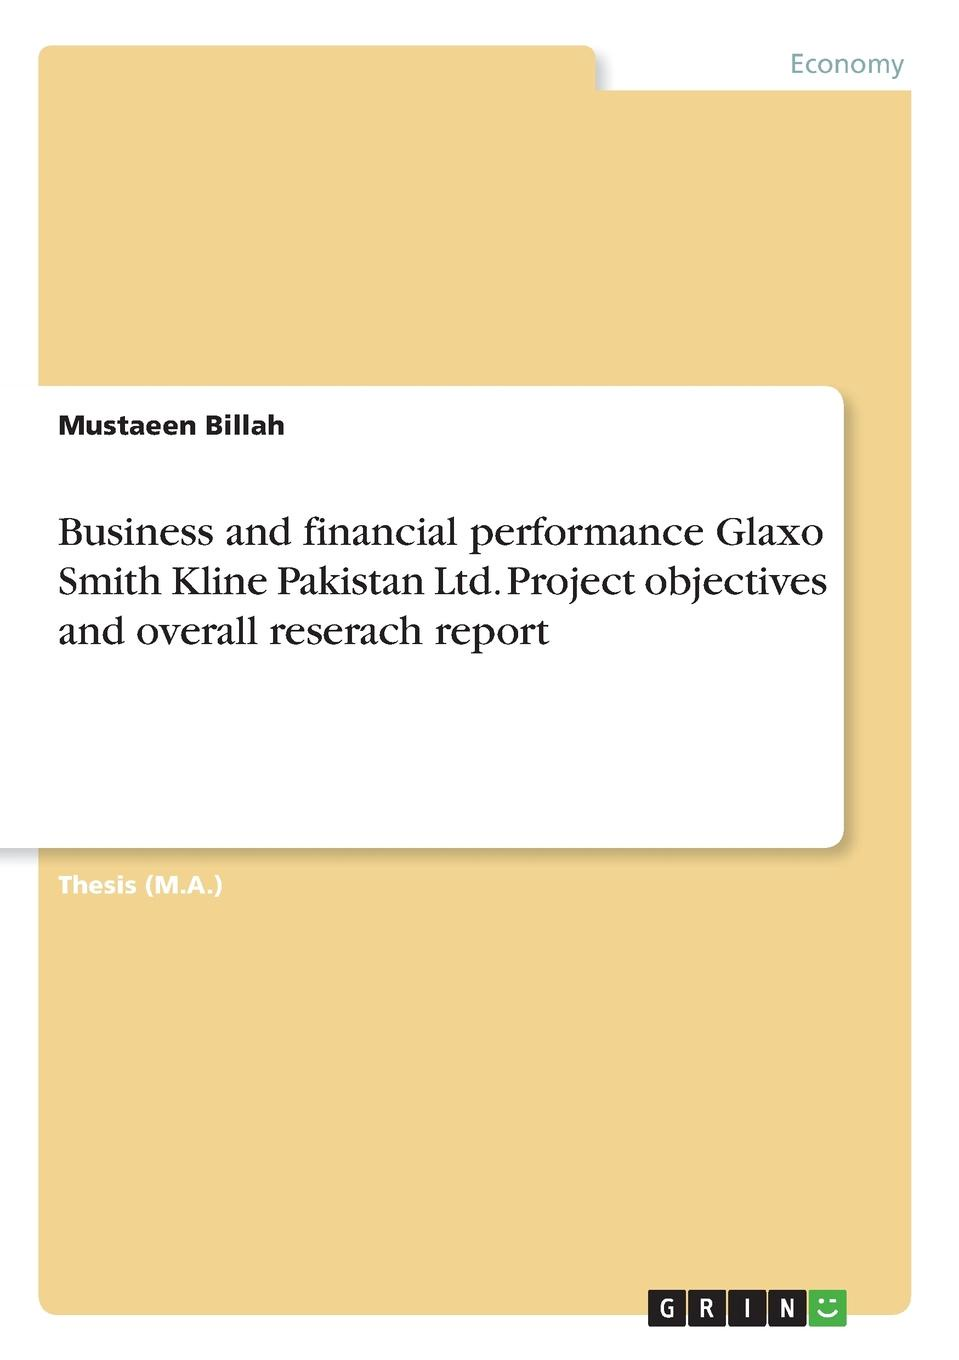 Mustaeen Billah Business and financial performance Glaxo Smith Kline Pakistan Ltd. Project objectives and overall reserach report retinopathy among undiagnosed patients of pakistan